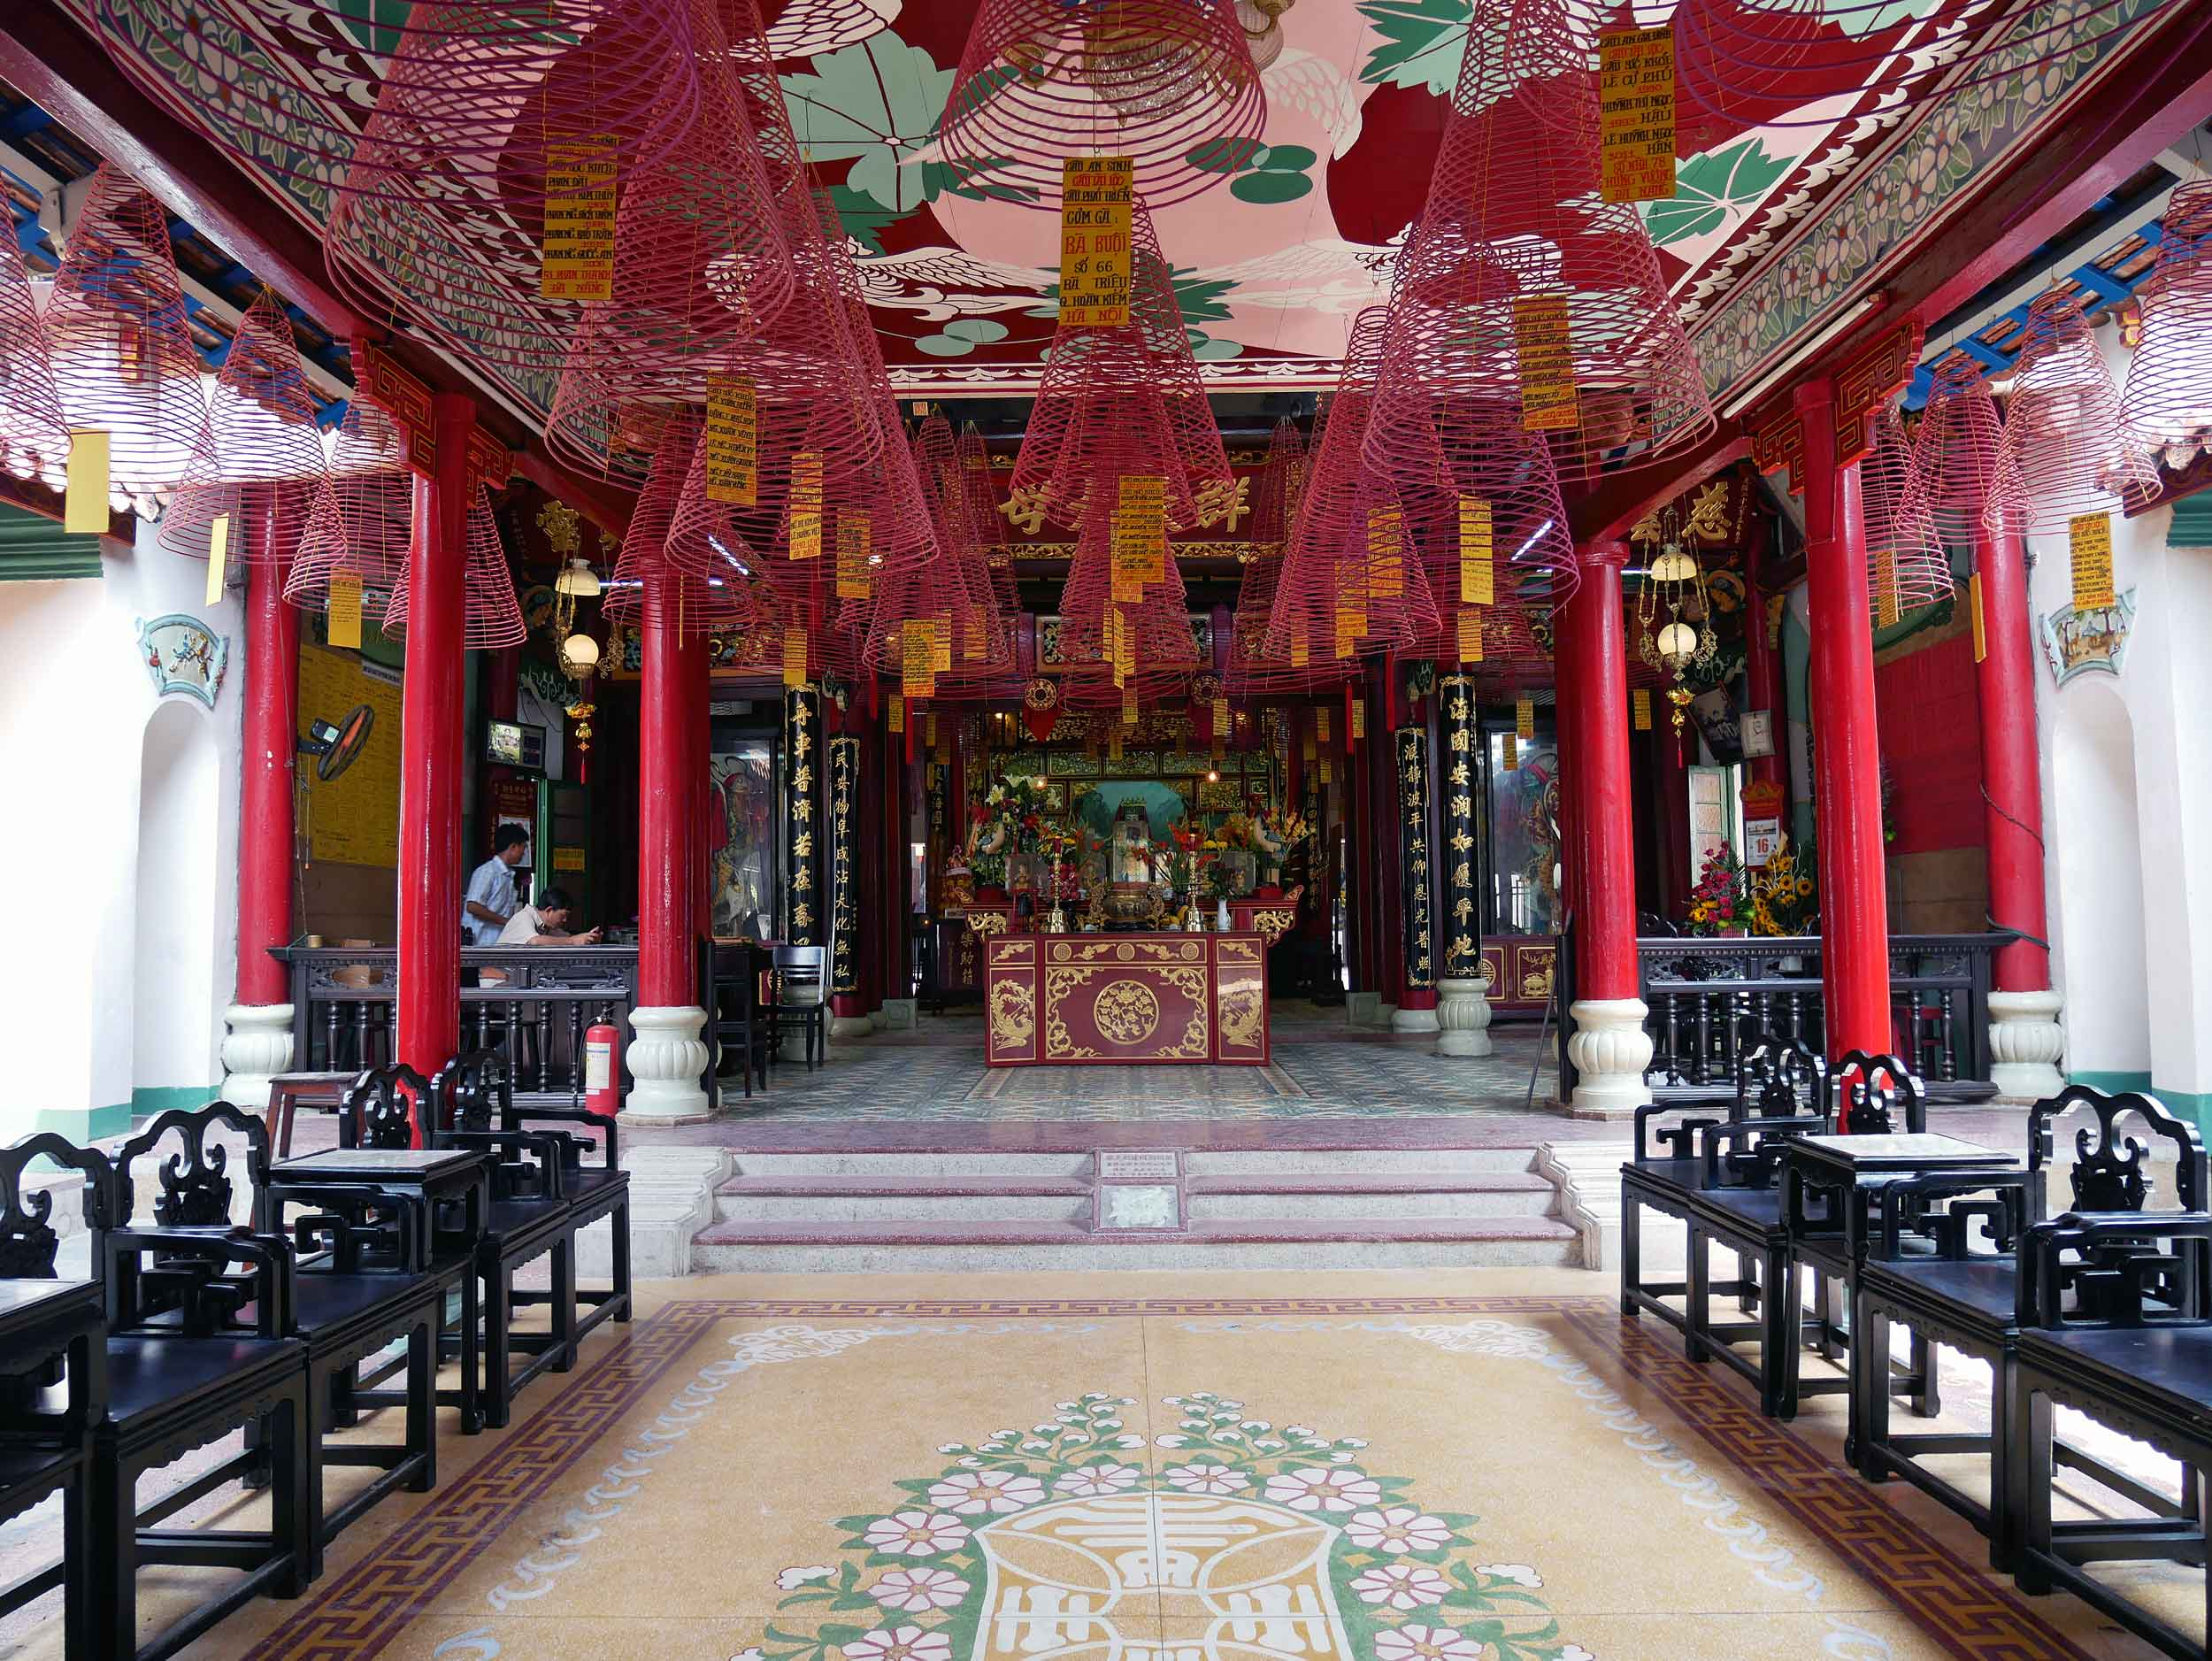 Inside the Assembly Hall, visitors can purchase large coils of incense,which provide good luck to families and burn from the ceiling for about 3-weeks.